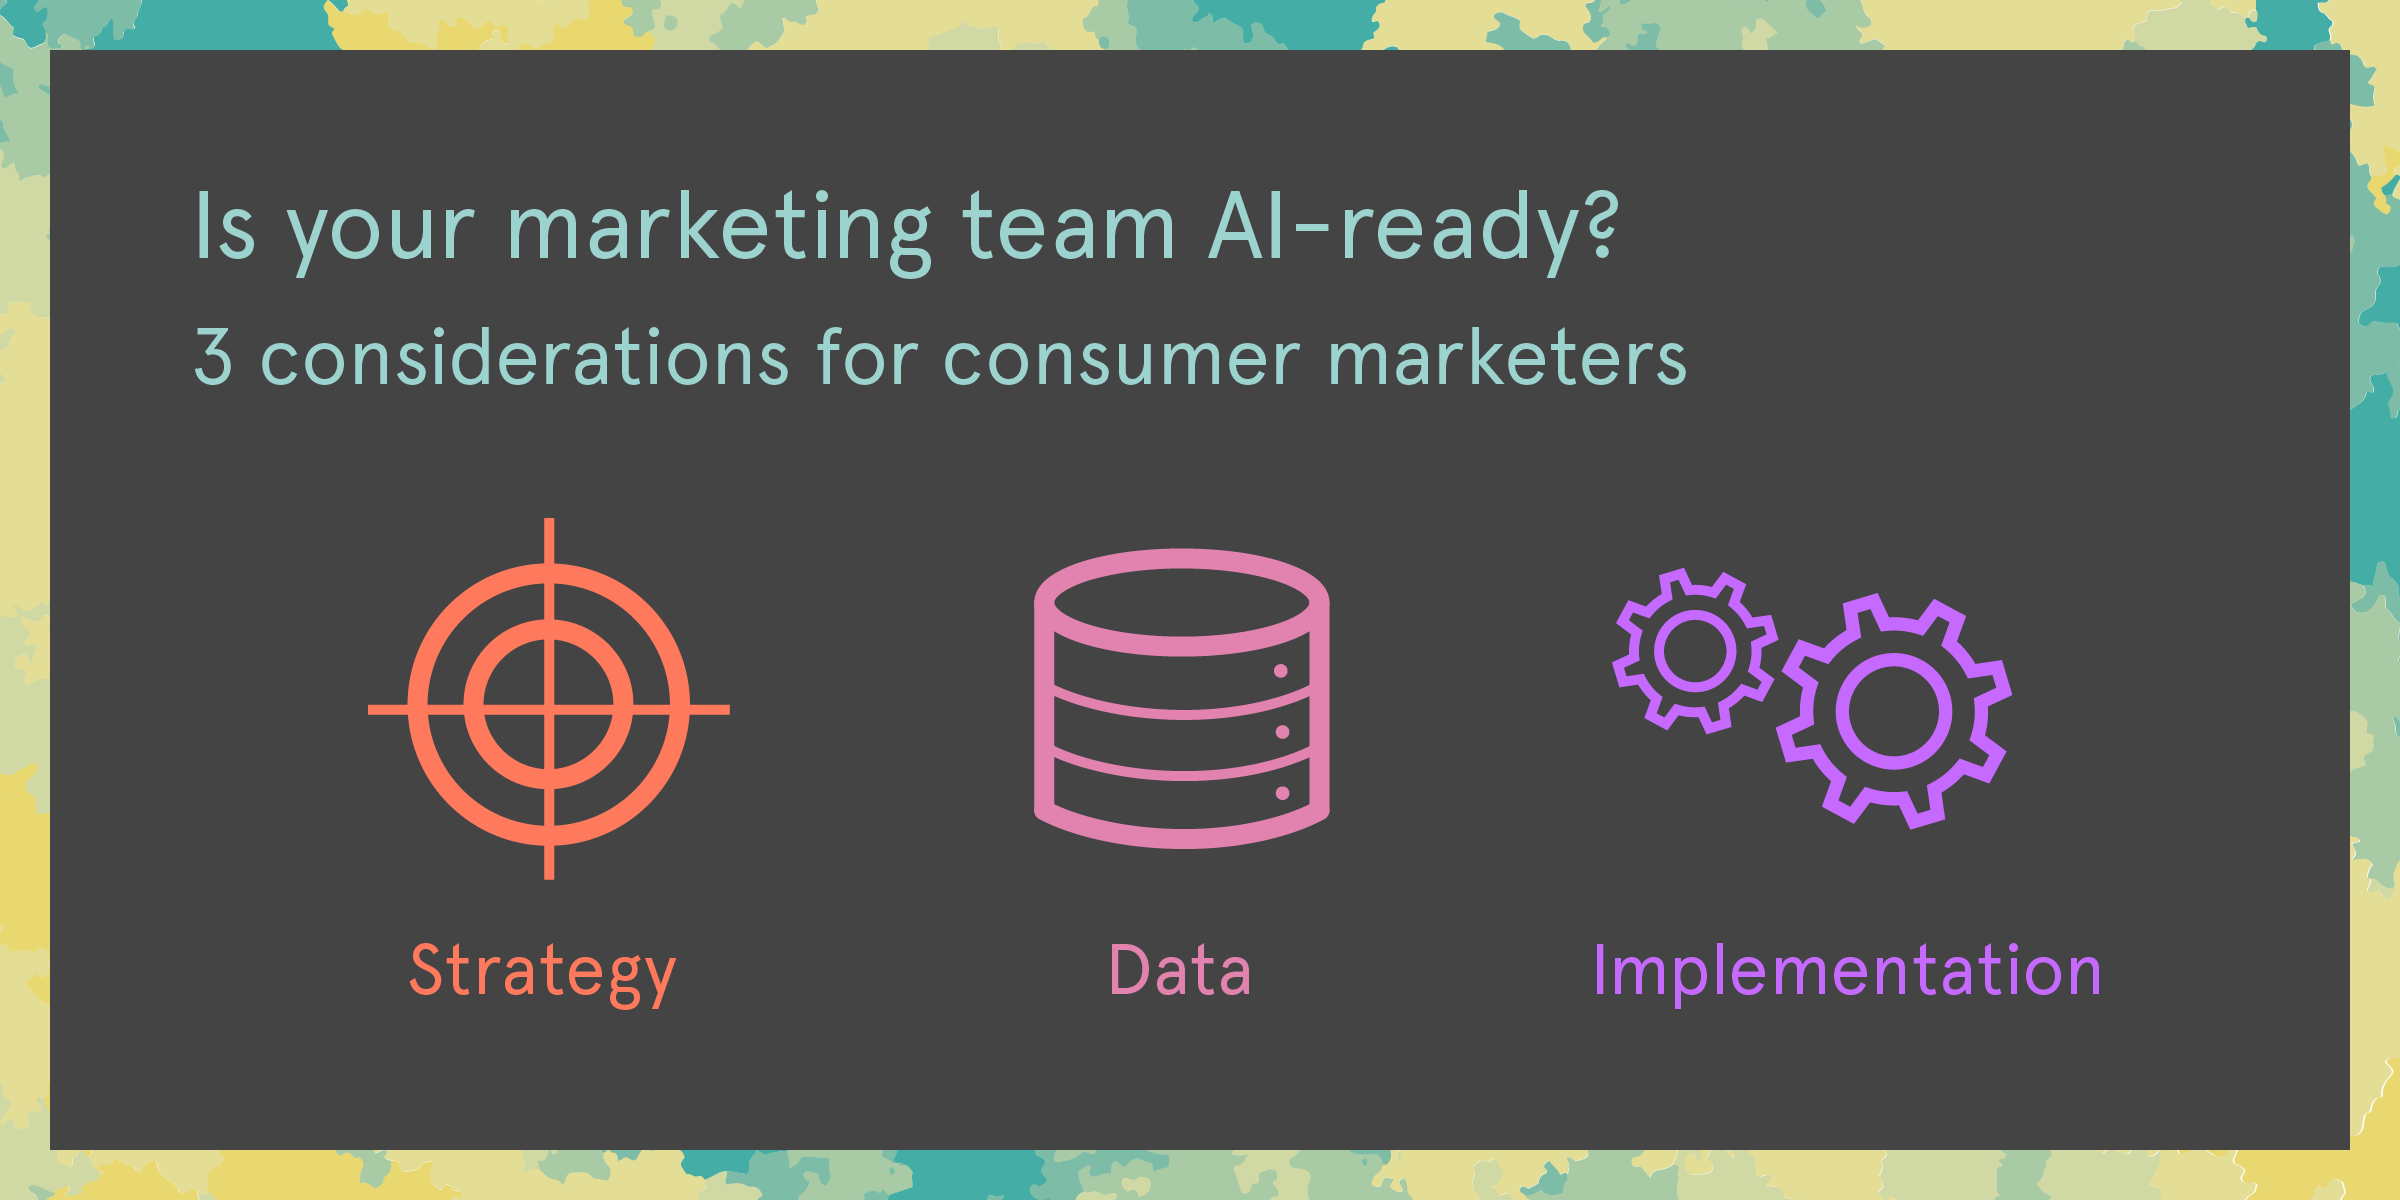 3_considerations_ai_ready-3